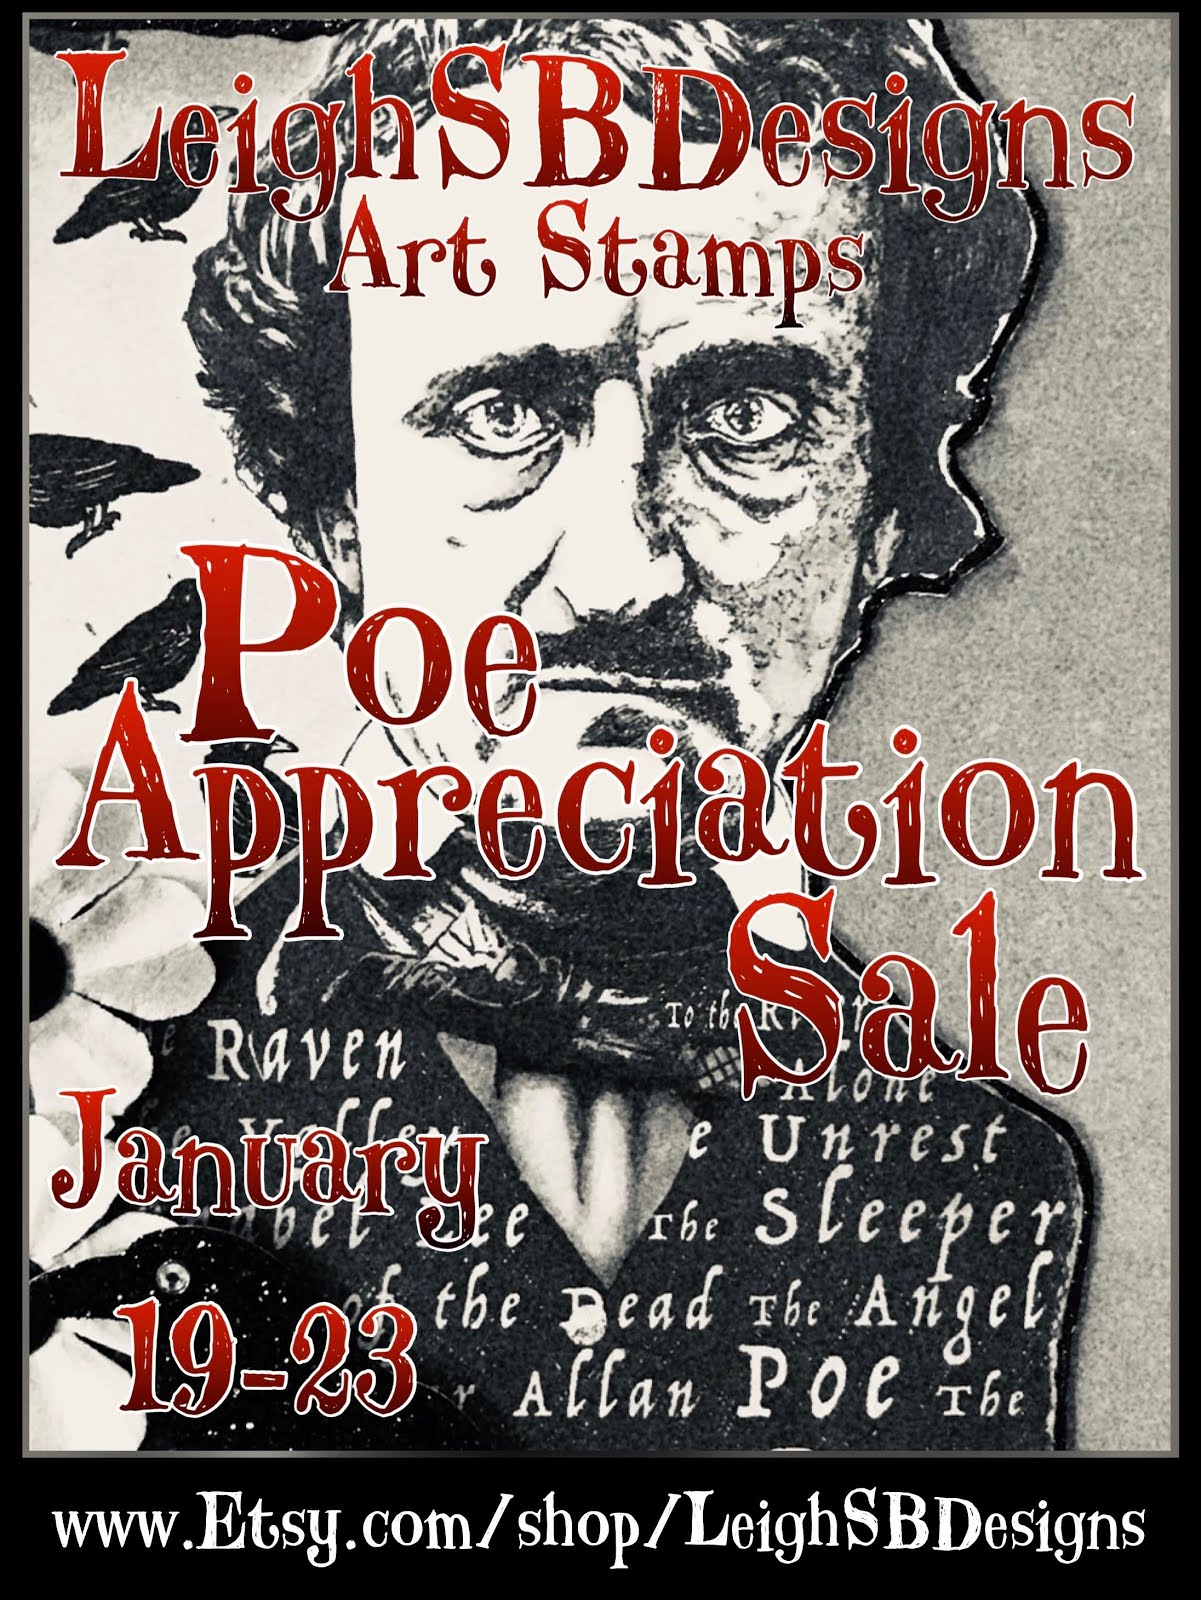 Poe Appreciation Sale Jan 19-23